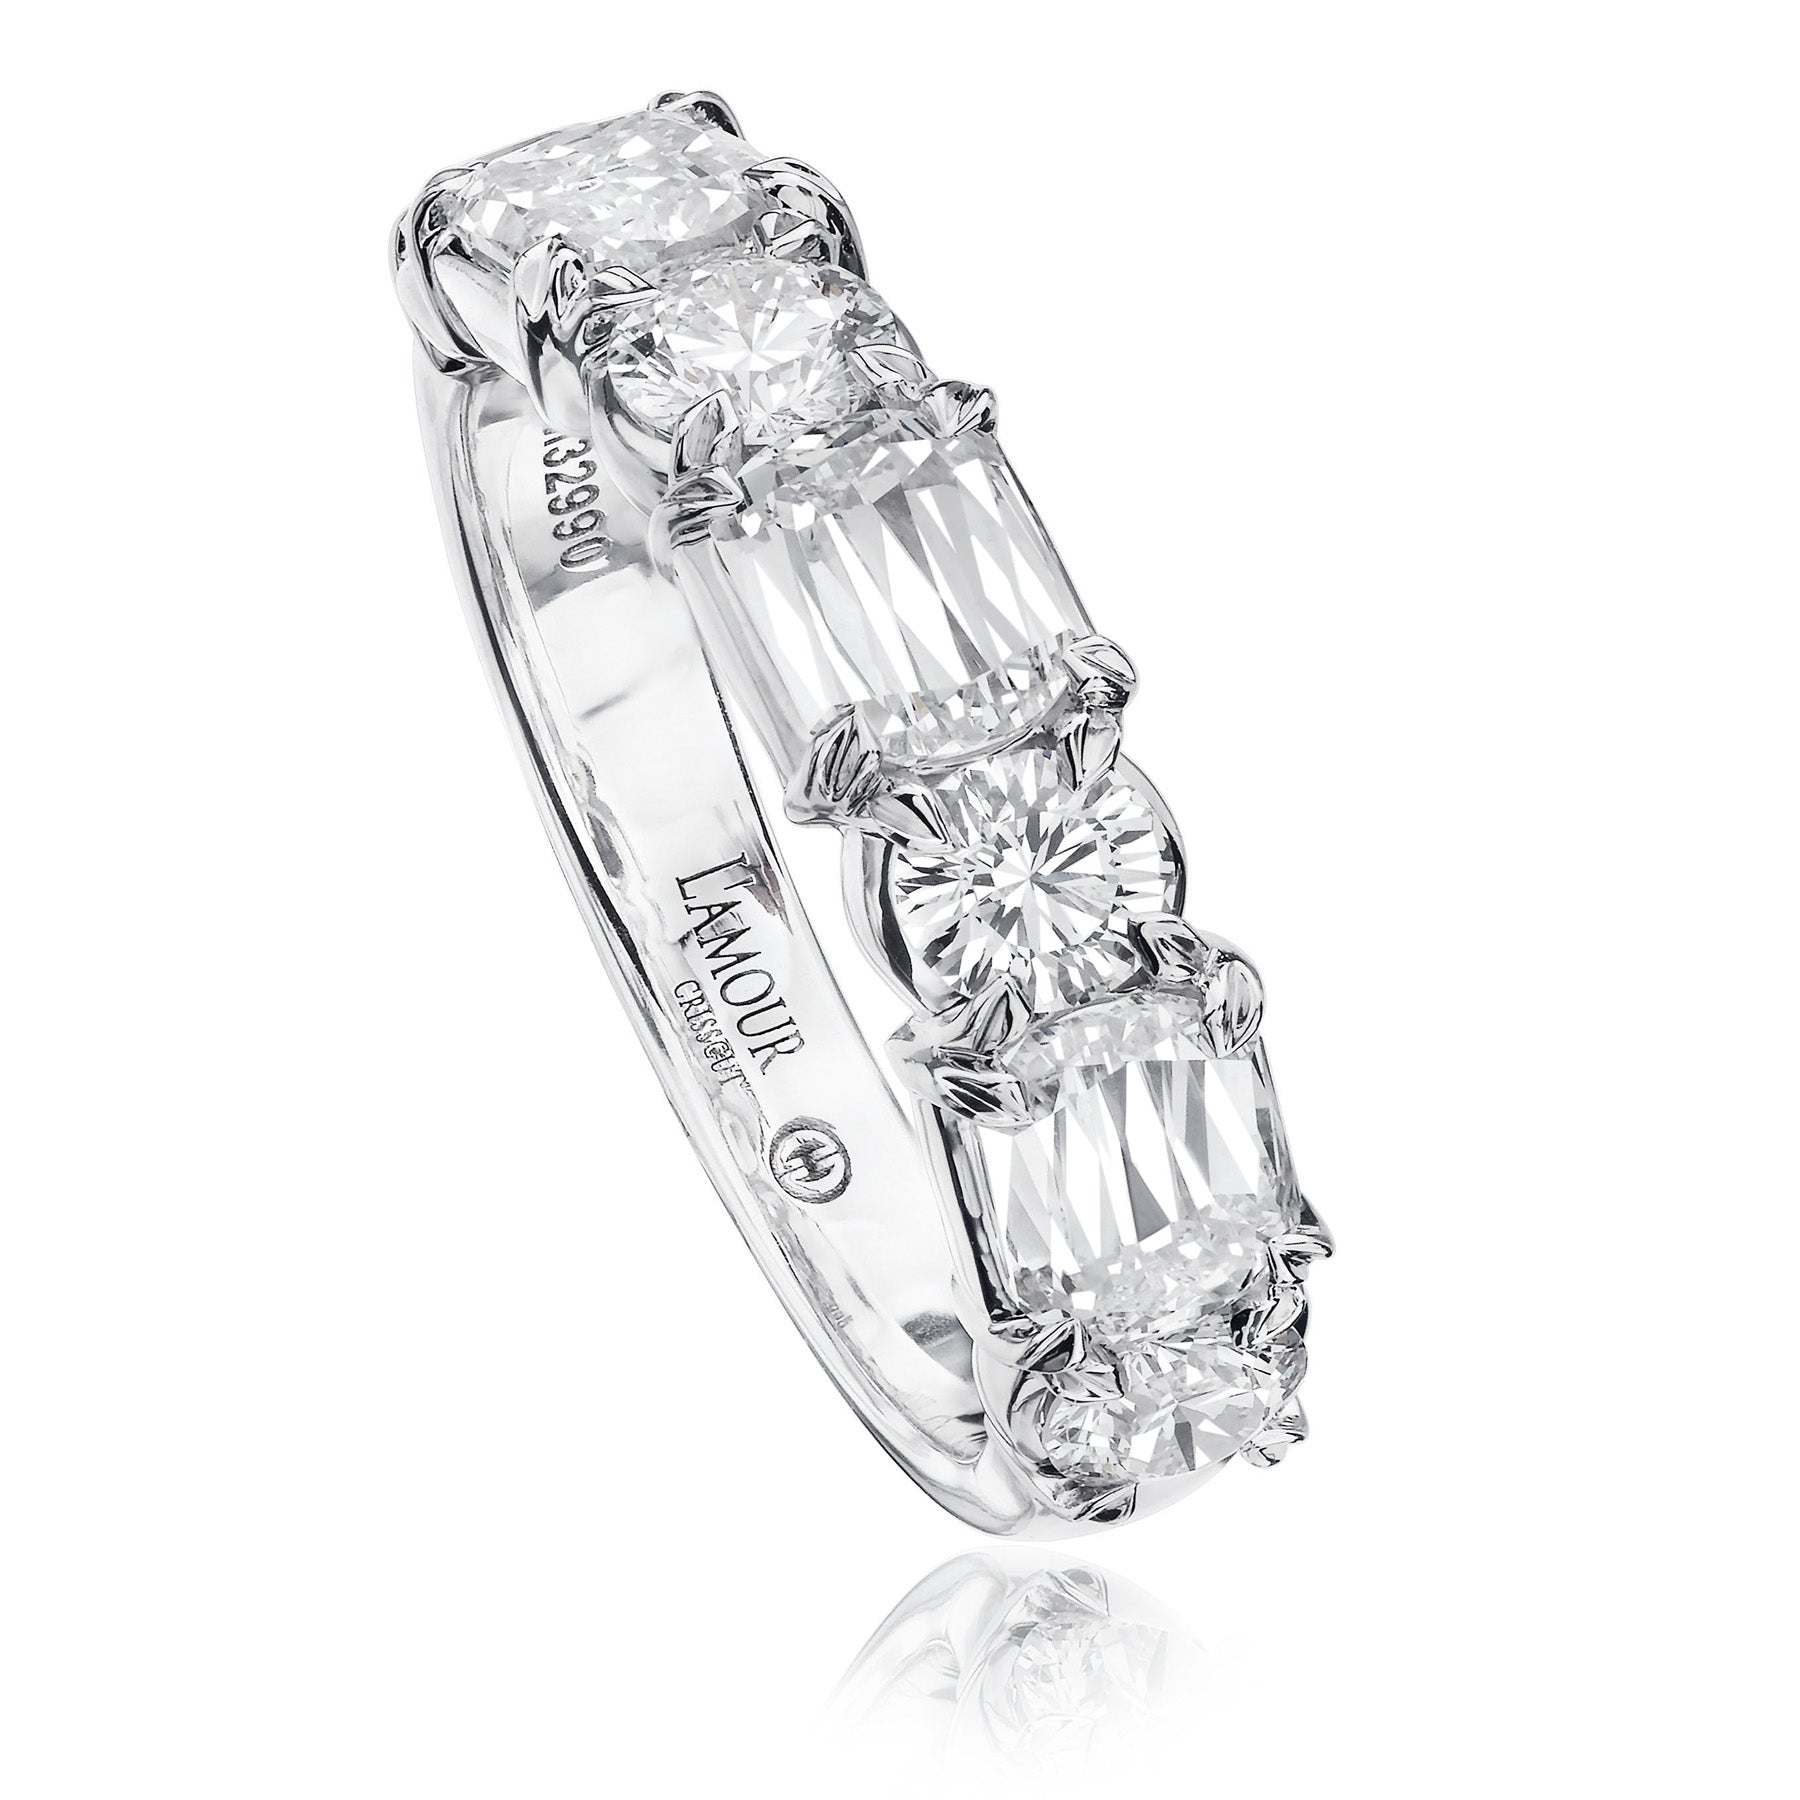 Christopher Designs Wedding Band features 3 L'Amour Crisscut diamonds and 4 Crisscut Round diamonds in 14K white gold shared prong settings going halfway around the finger.